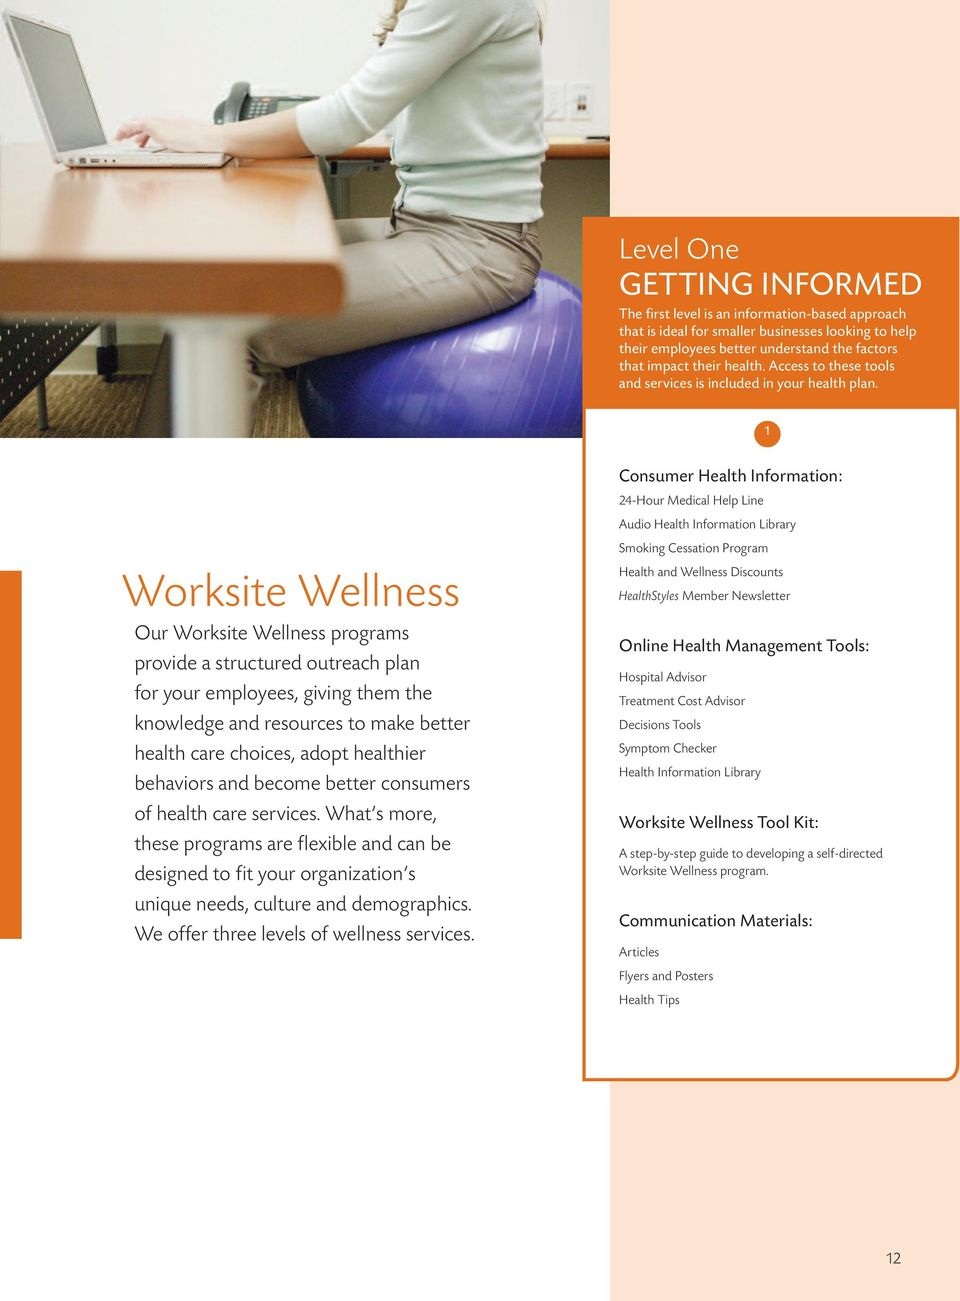 1 Worksite Wellness Our Worksite Wellness programs provide a structured outreach plan for your employees, giving them the knowledge and resources to make better health care choices, adopt healthier